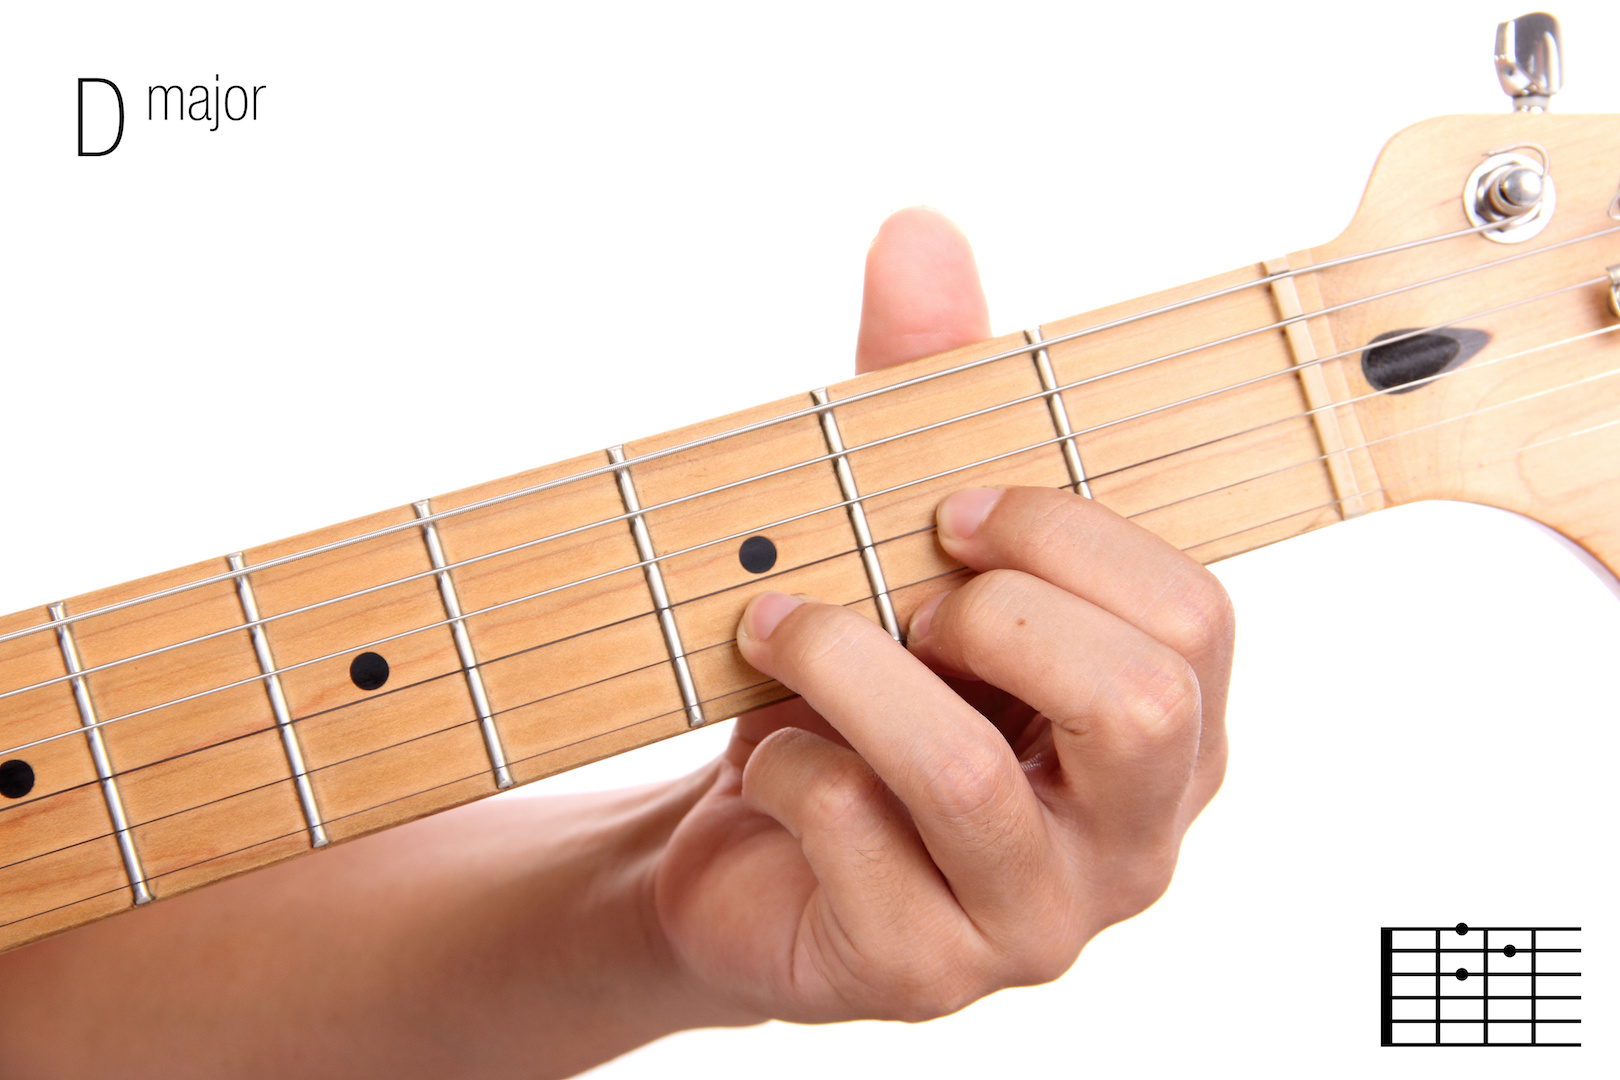 D Chord on Guitar Chord Shapes, Major Scale, Popular Songs in Key ...